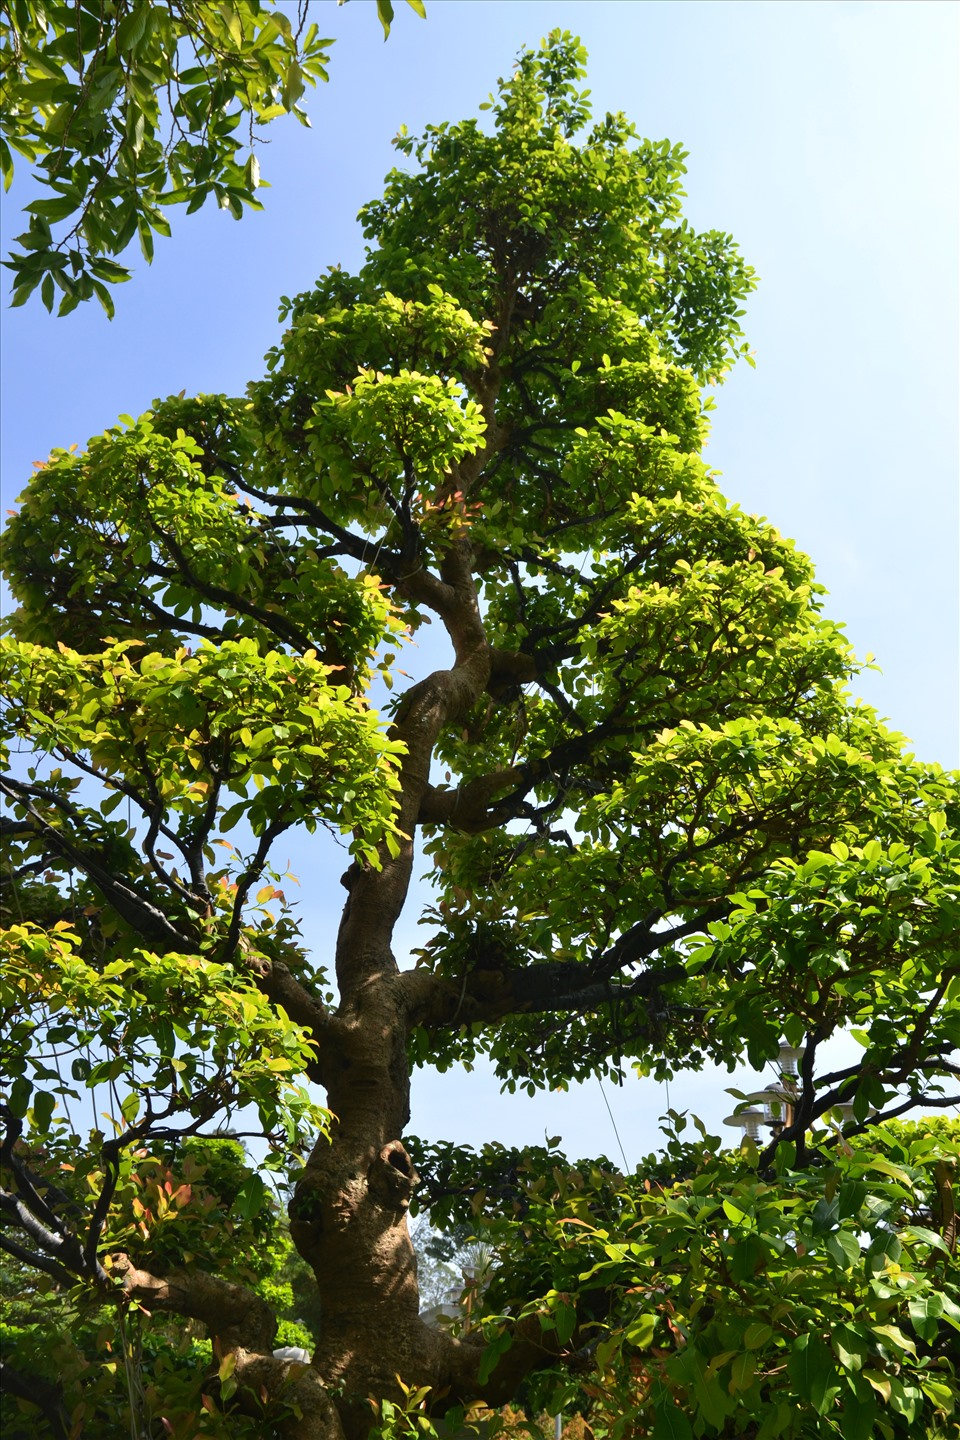 Particularly, the sop tree, planted in 1688, is now 333 years old.  Photo: Luc Tung